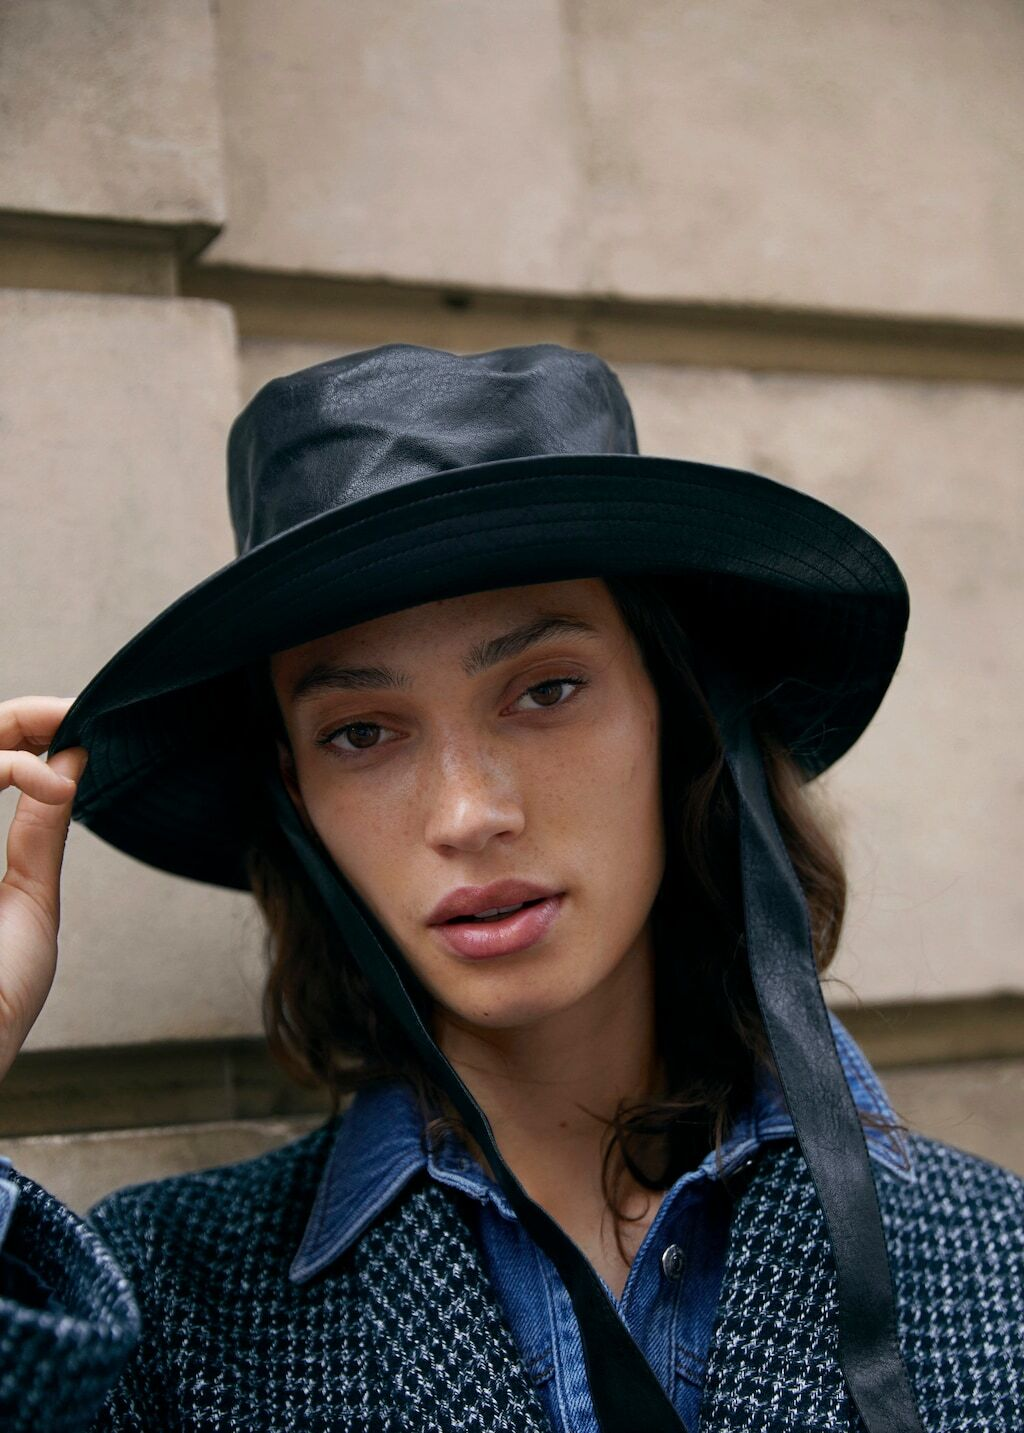 What to wear in the rain? Exciting stylish clothes and accessories for bad weather 38